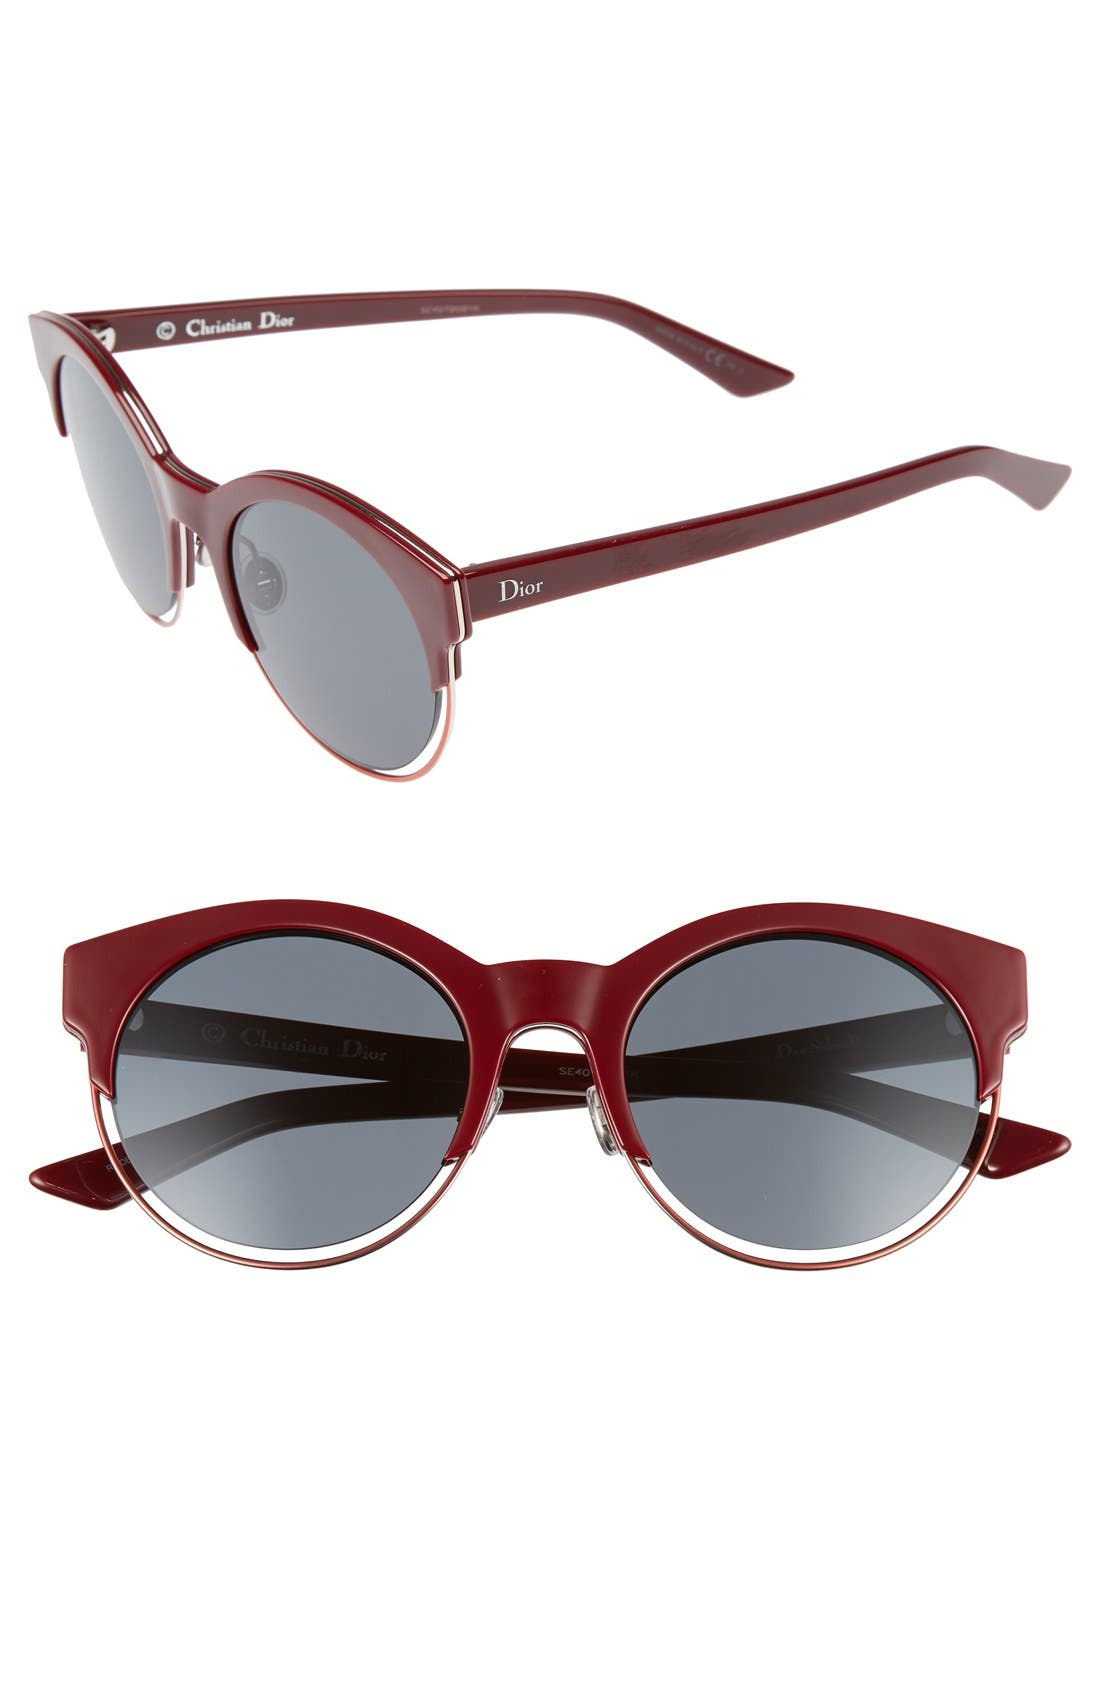 Siderall 1 53mm Round Sunglasses,                             Main thumbnail 8, color,